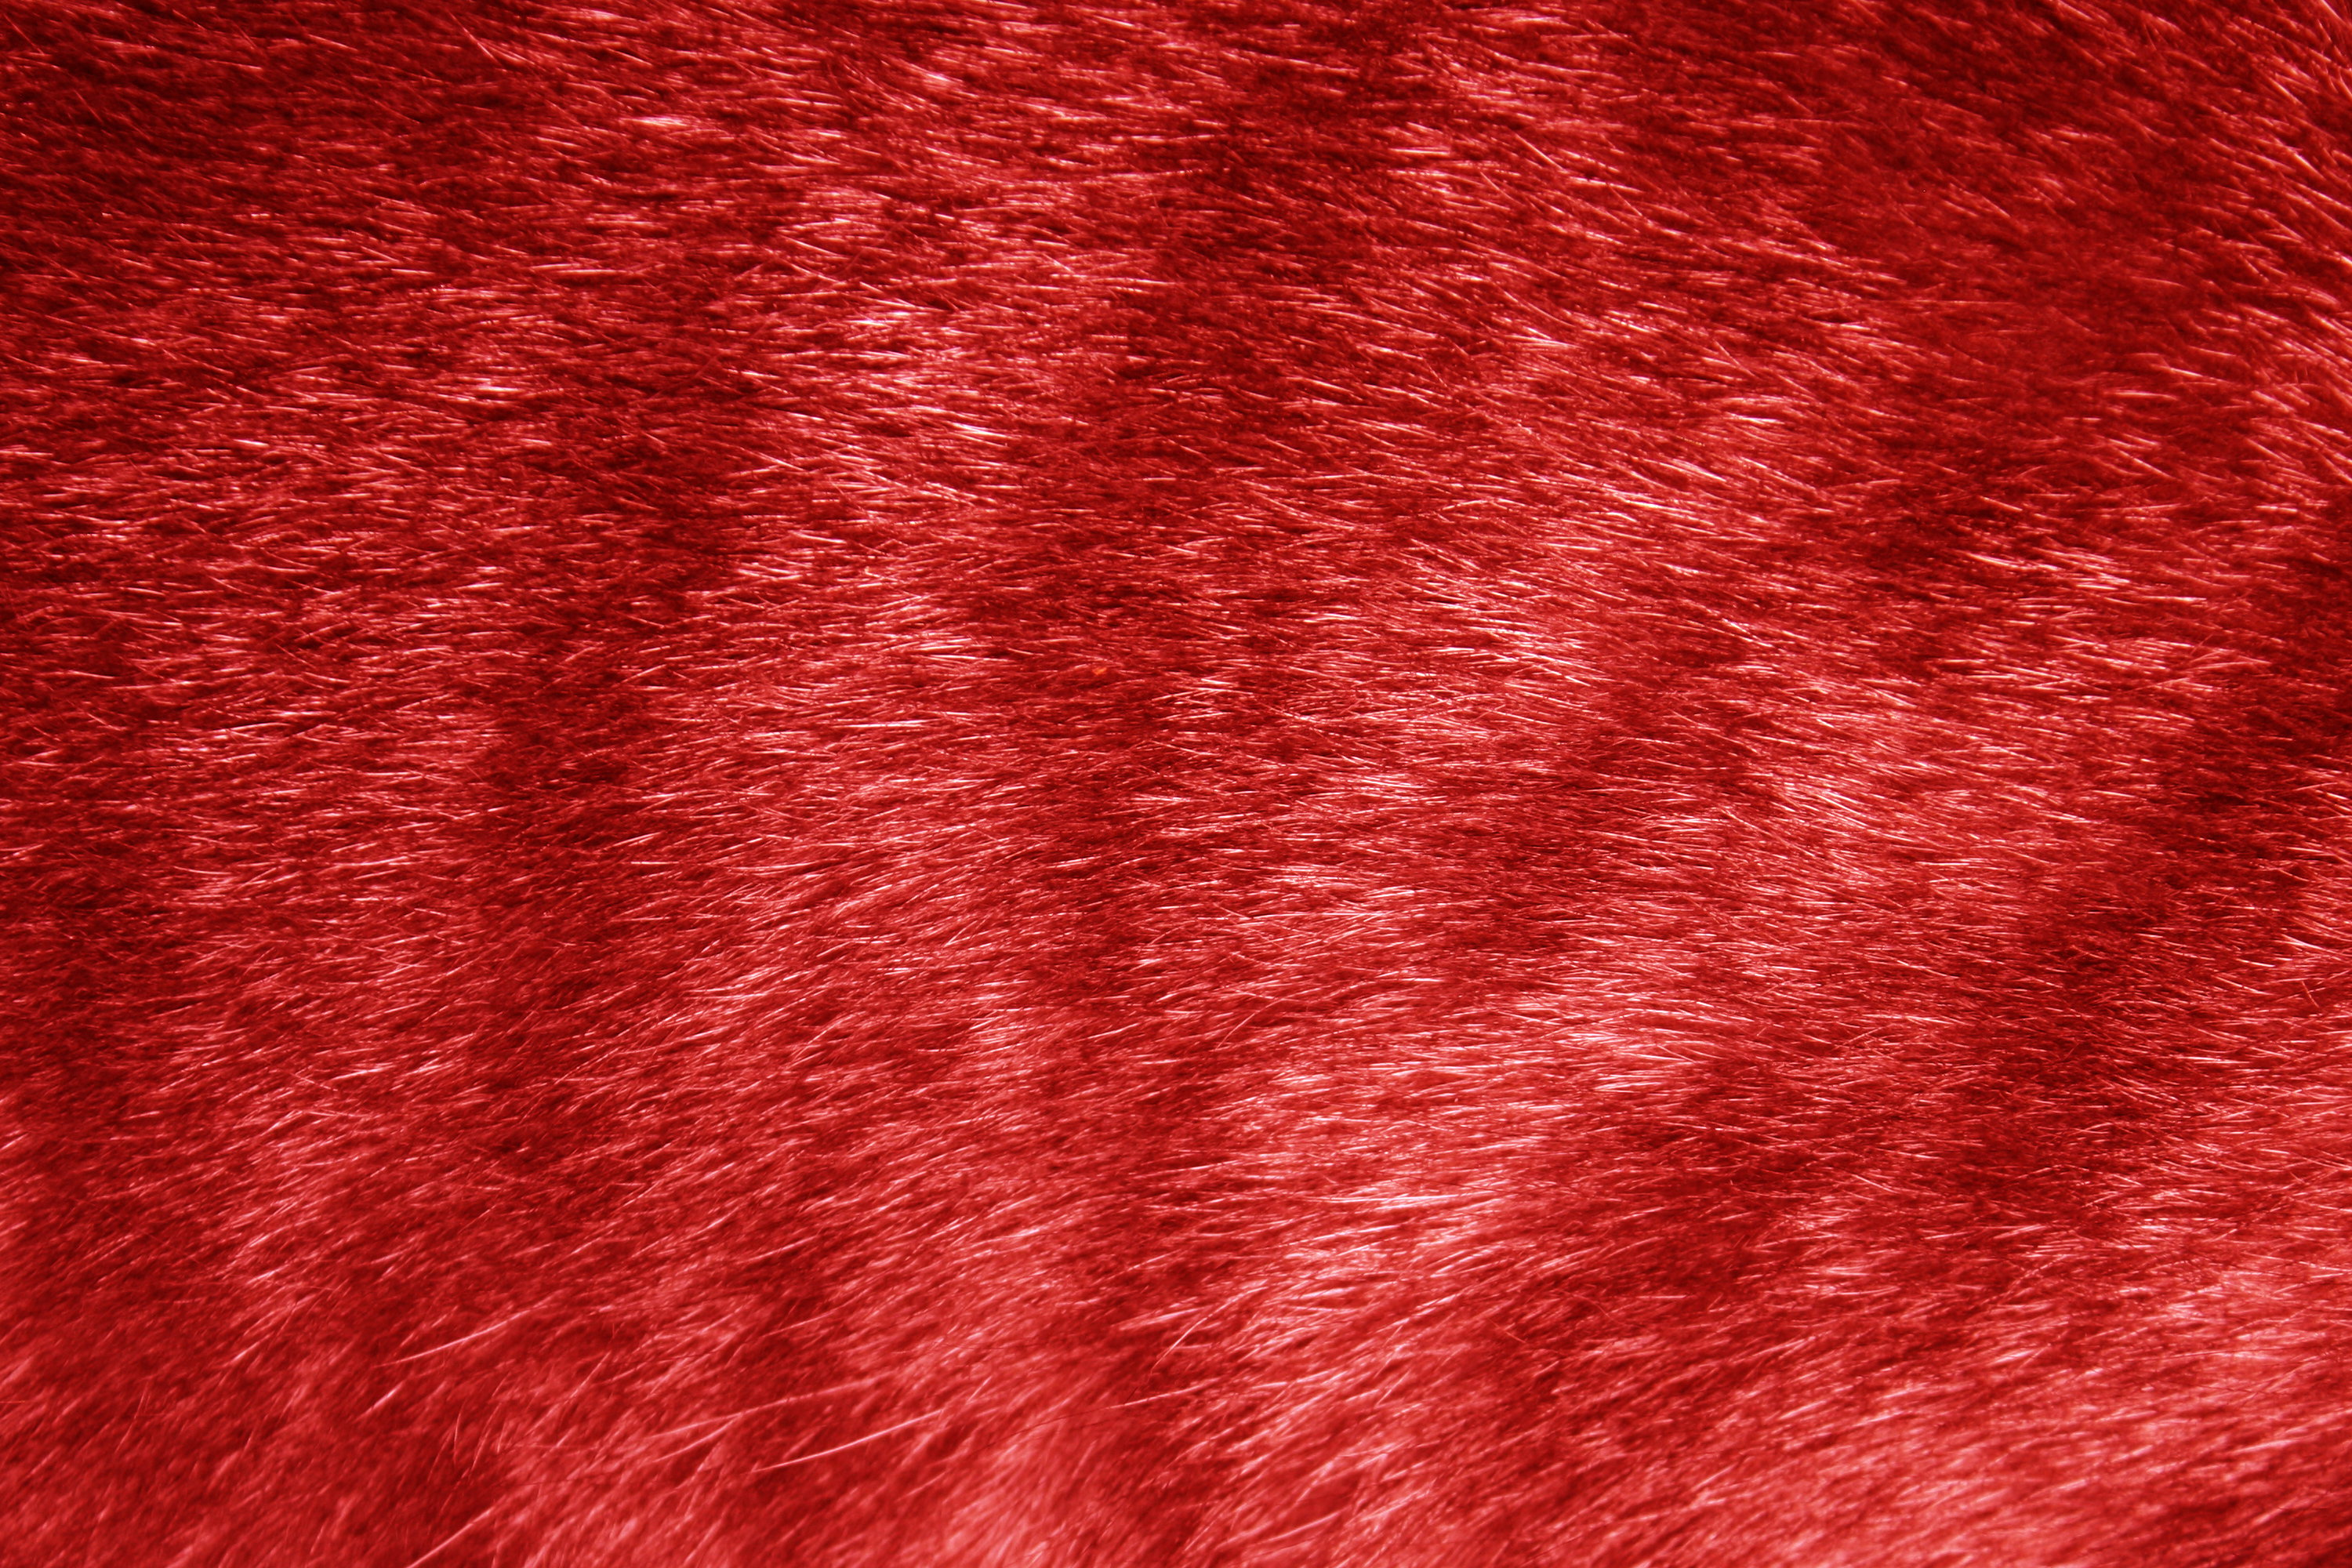 Red Tabby Fur Texture Picture Free Photograph Photos